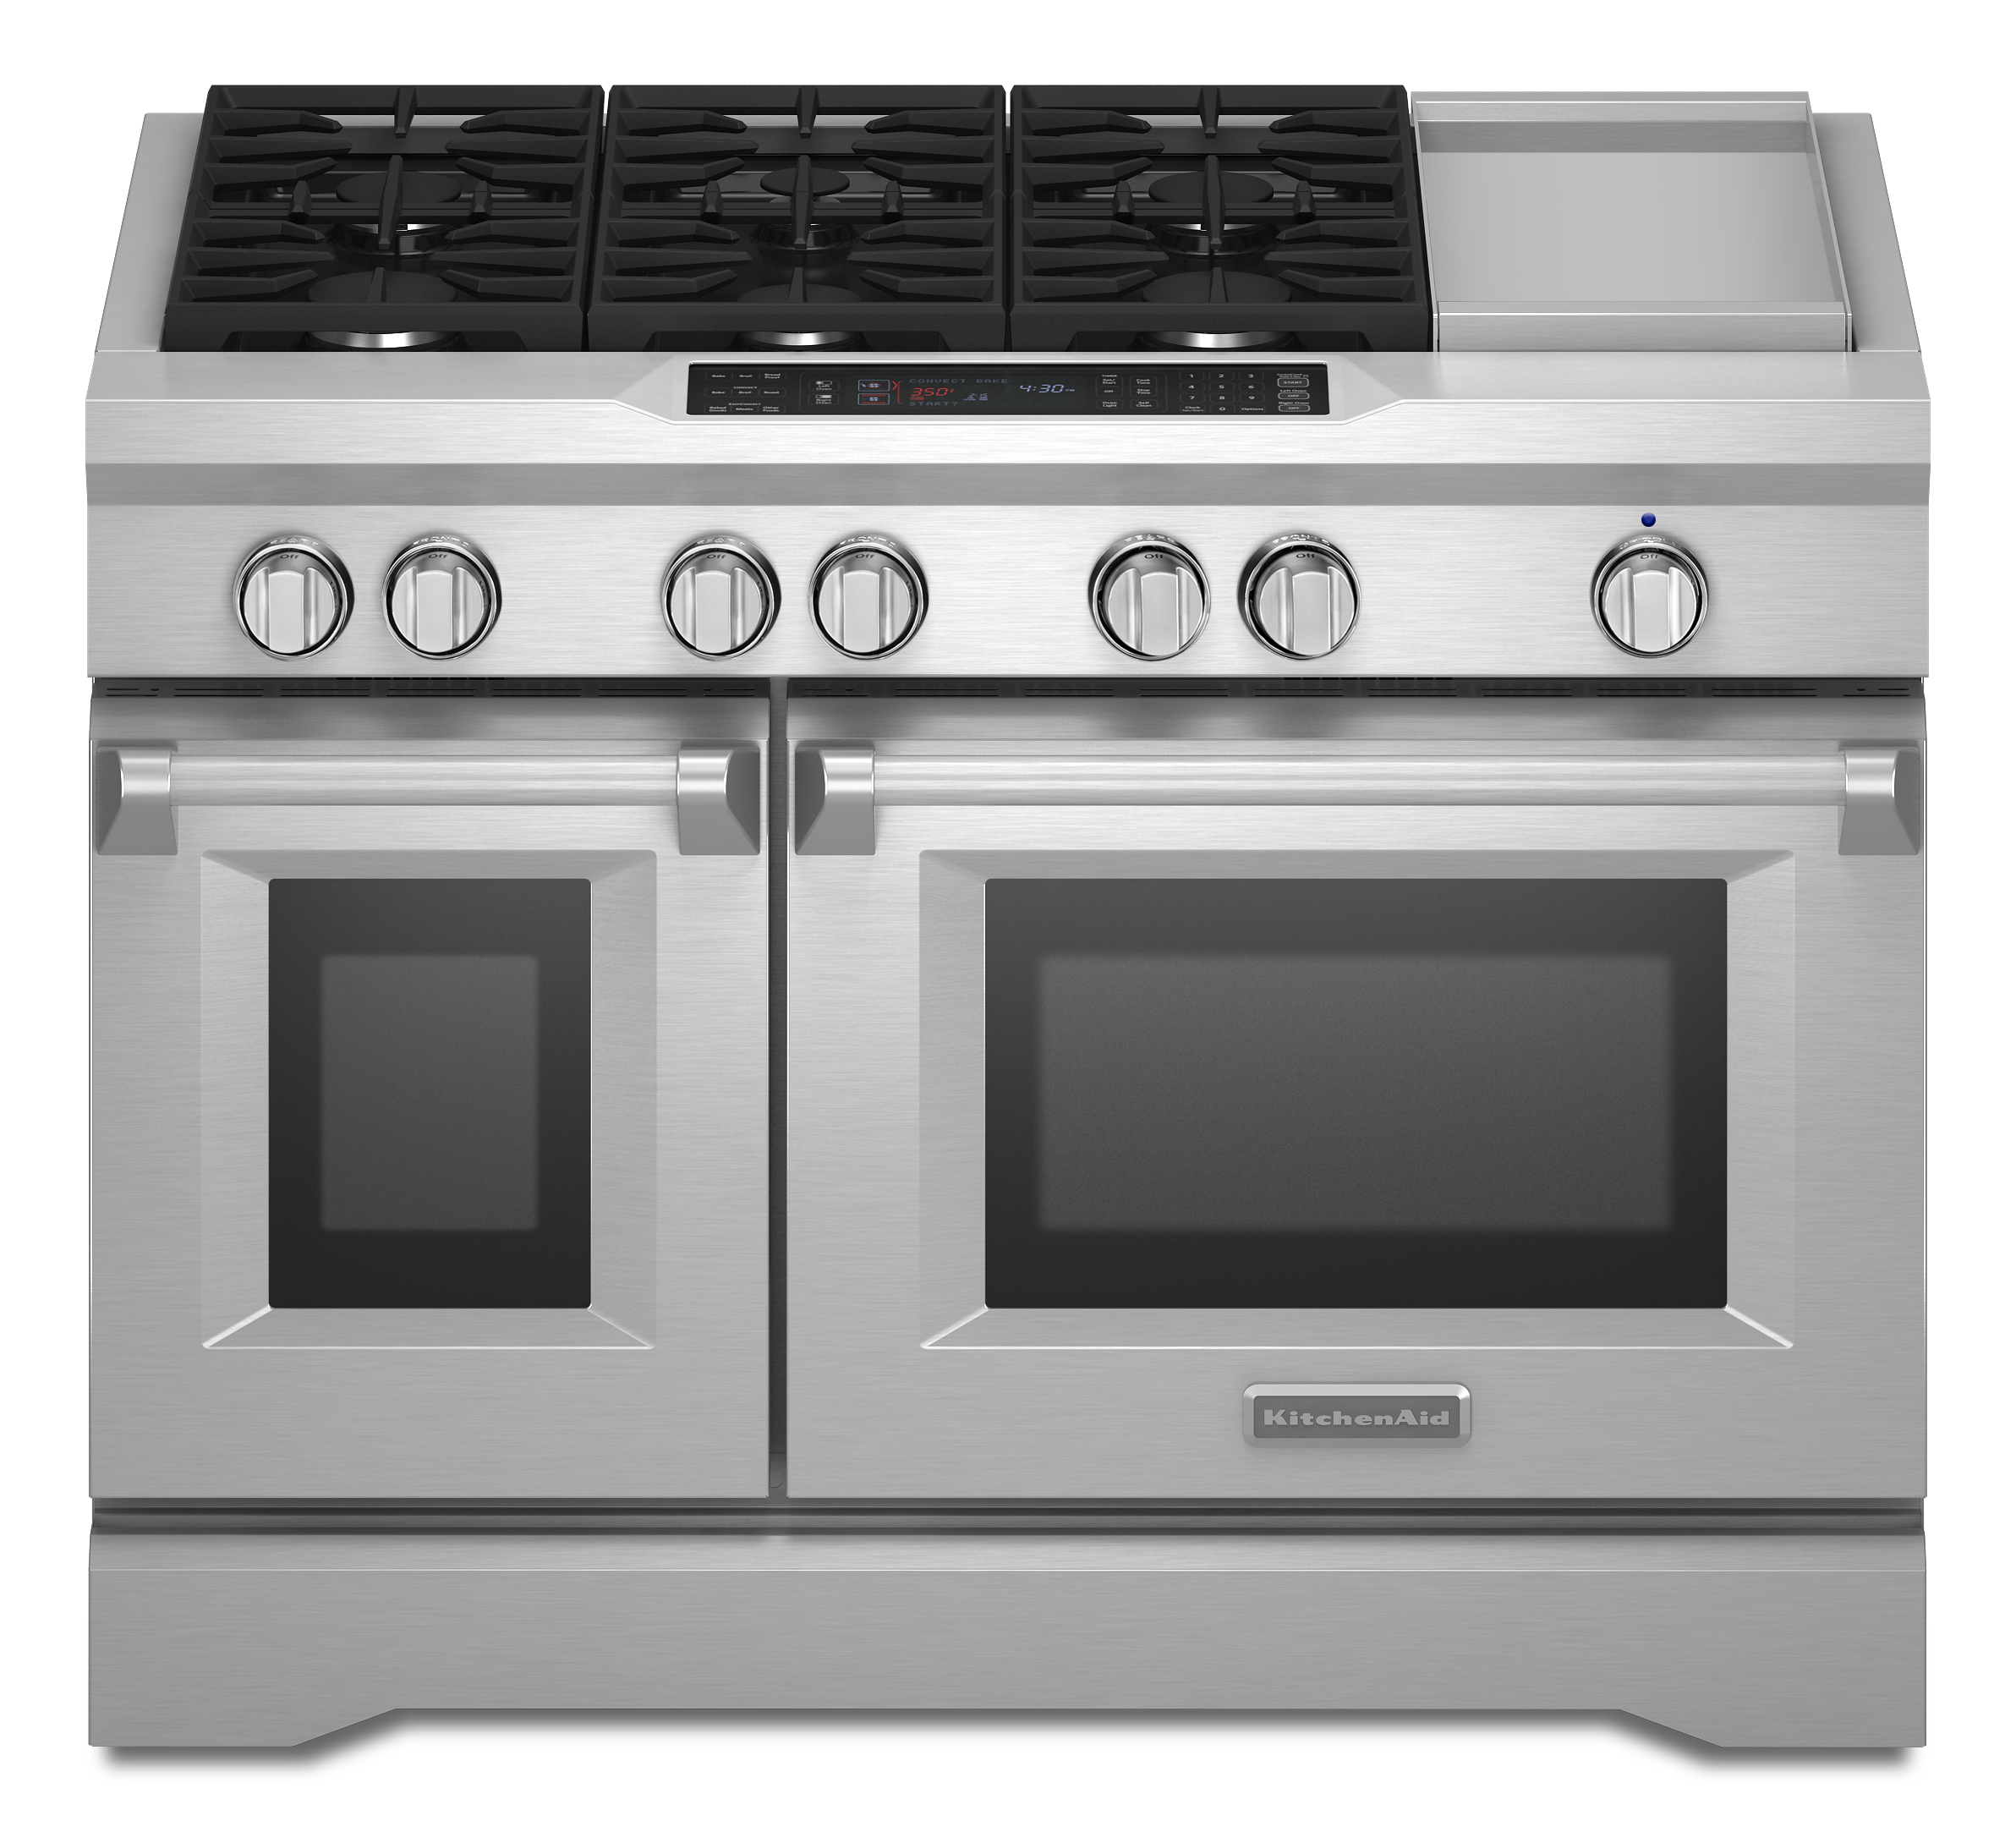 48-in 7-Burner 4.1-cu ft/2.2-cu ft Self-Cleaning Double Oven Convection  Dual Fuel Range (Stainless Steel)